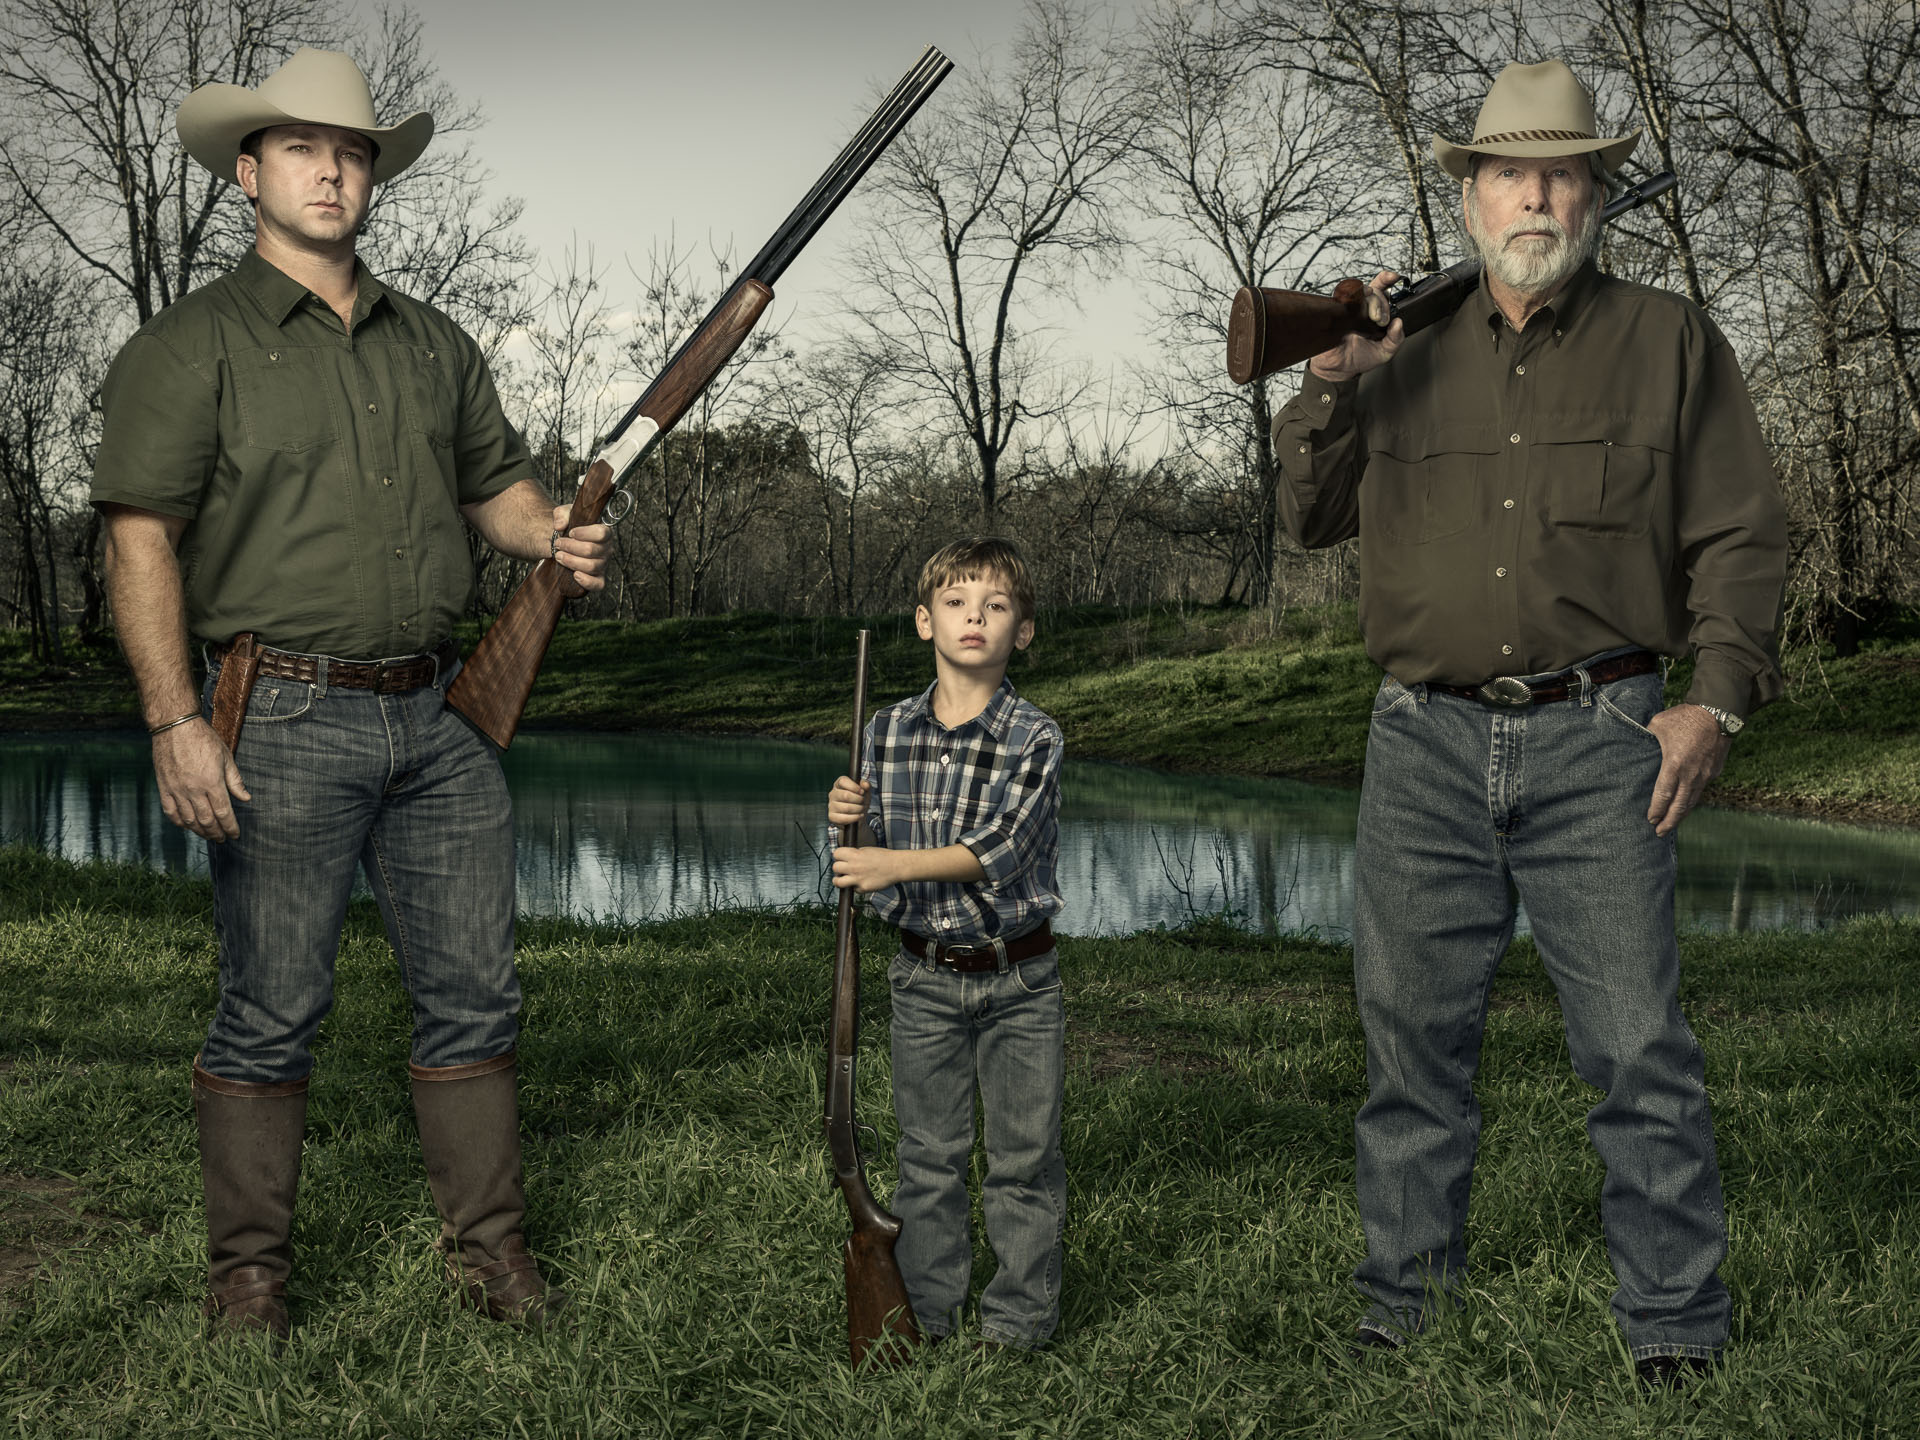 winters_tm_guns_ammann_family_5080